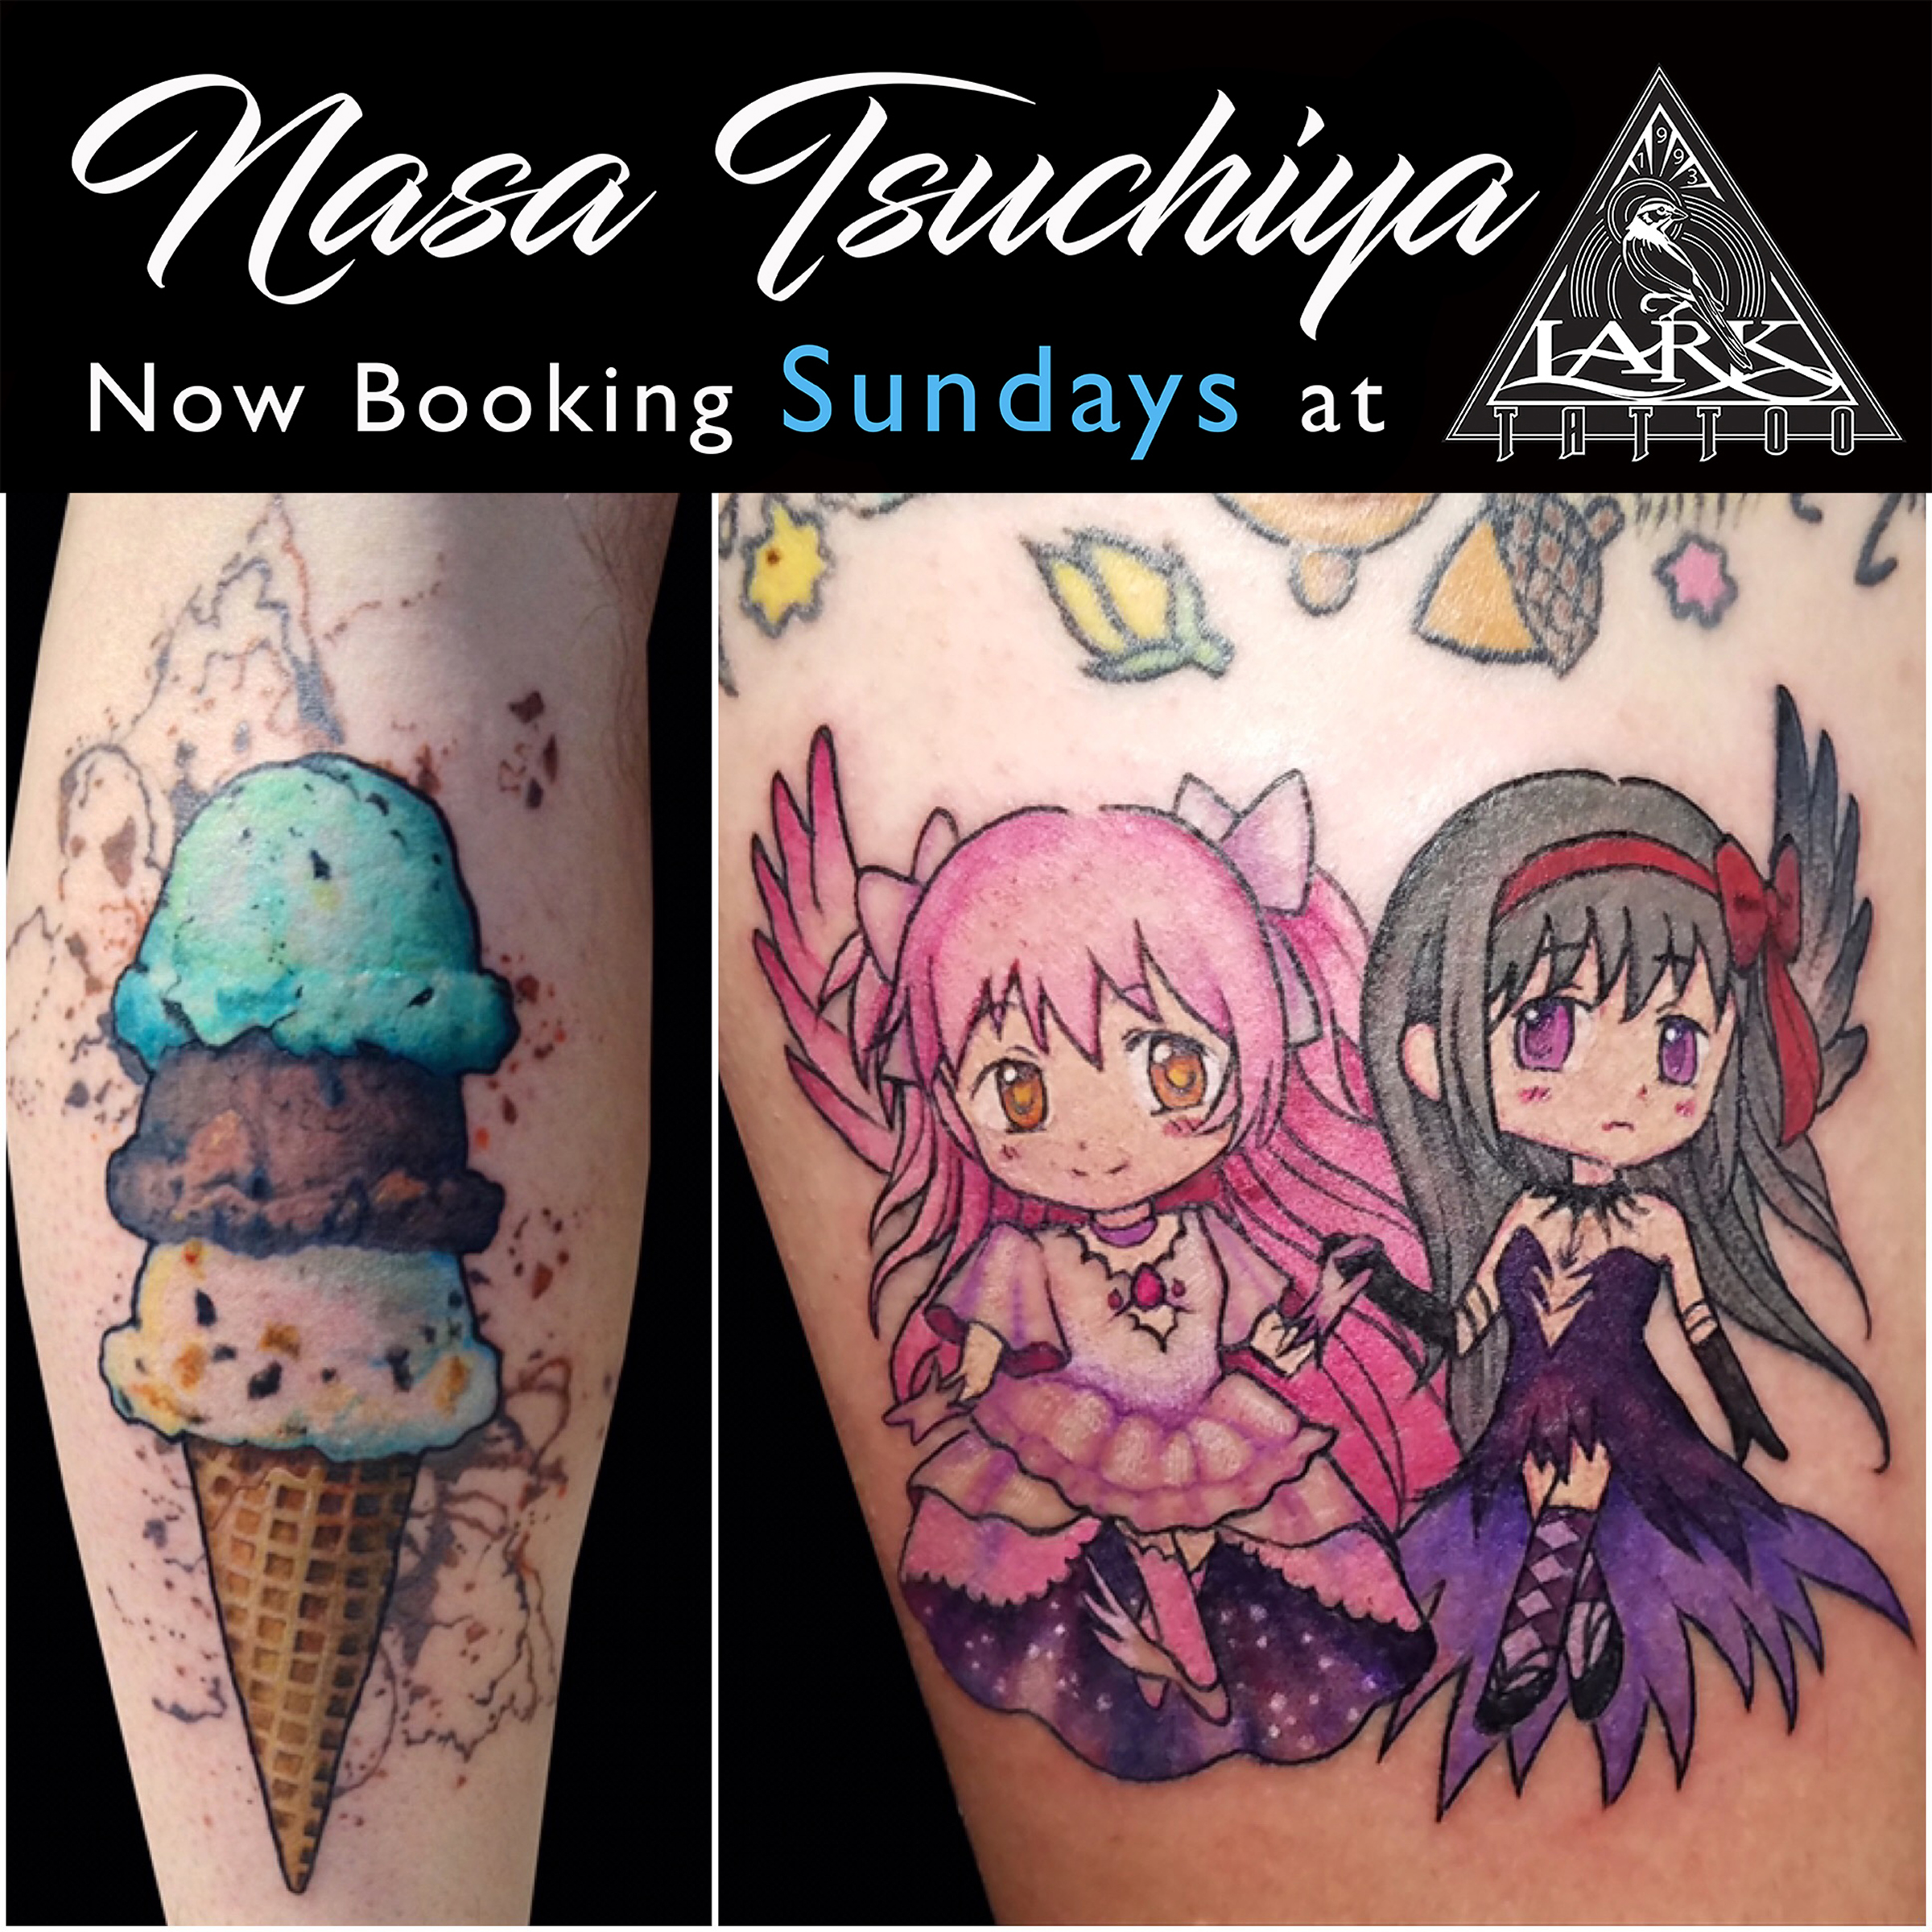 #watercolor #watercolortattoo #icecream #icecreamtattoo #ColorTattoo #CuteTattoo #Cartoon #CartoonTattoo #cutetattoo #anime #animetattoo #colorfultattoo #FemaleArtist #FemaleTattooer #LadyTattooer #LarkTattoo #TattooedPeople #TattooStuff #BodyCanvas #TattooStyle #ColorTattoo #PrettyTattoo #PrettyTattoos #ColorfulTattoo #tattoo #tattoos #tat #tats #tatts #tatted #tattedup #tattoist #tattooed #inked #inkedup #ink #tattoooftheday #amazingink #bodyart #larktattoowestbury